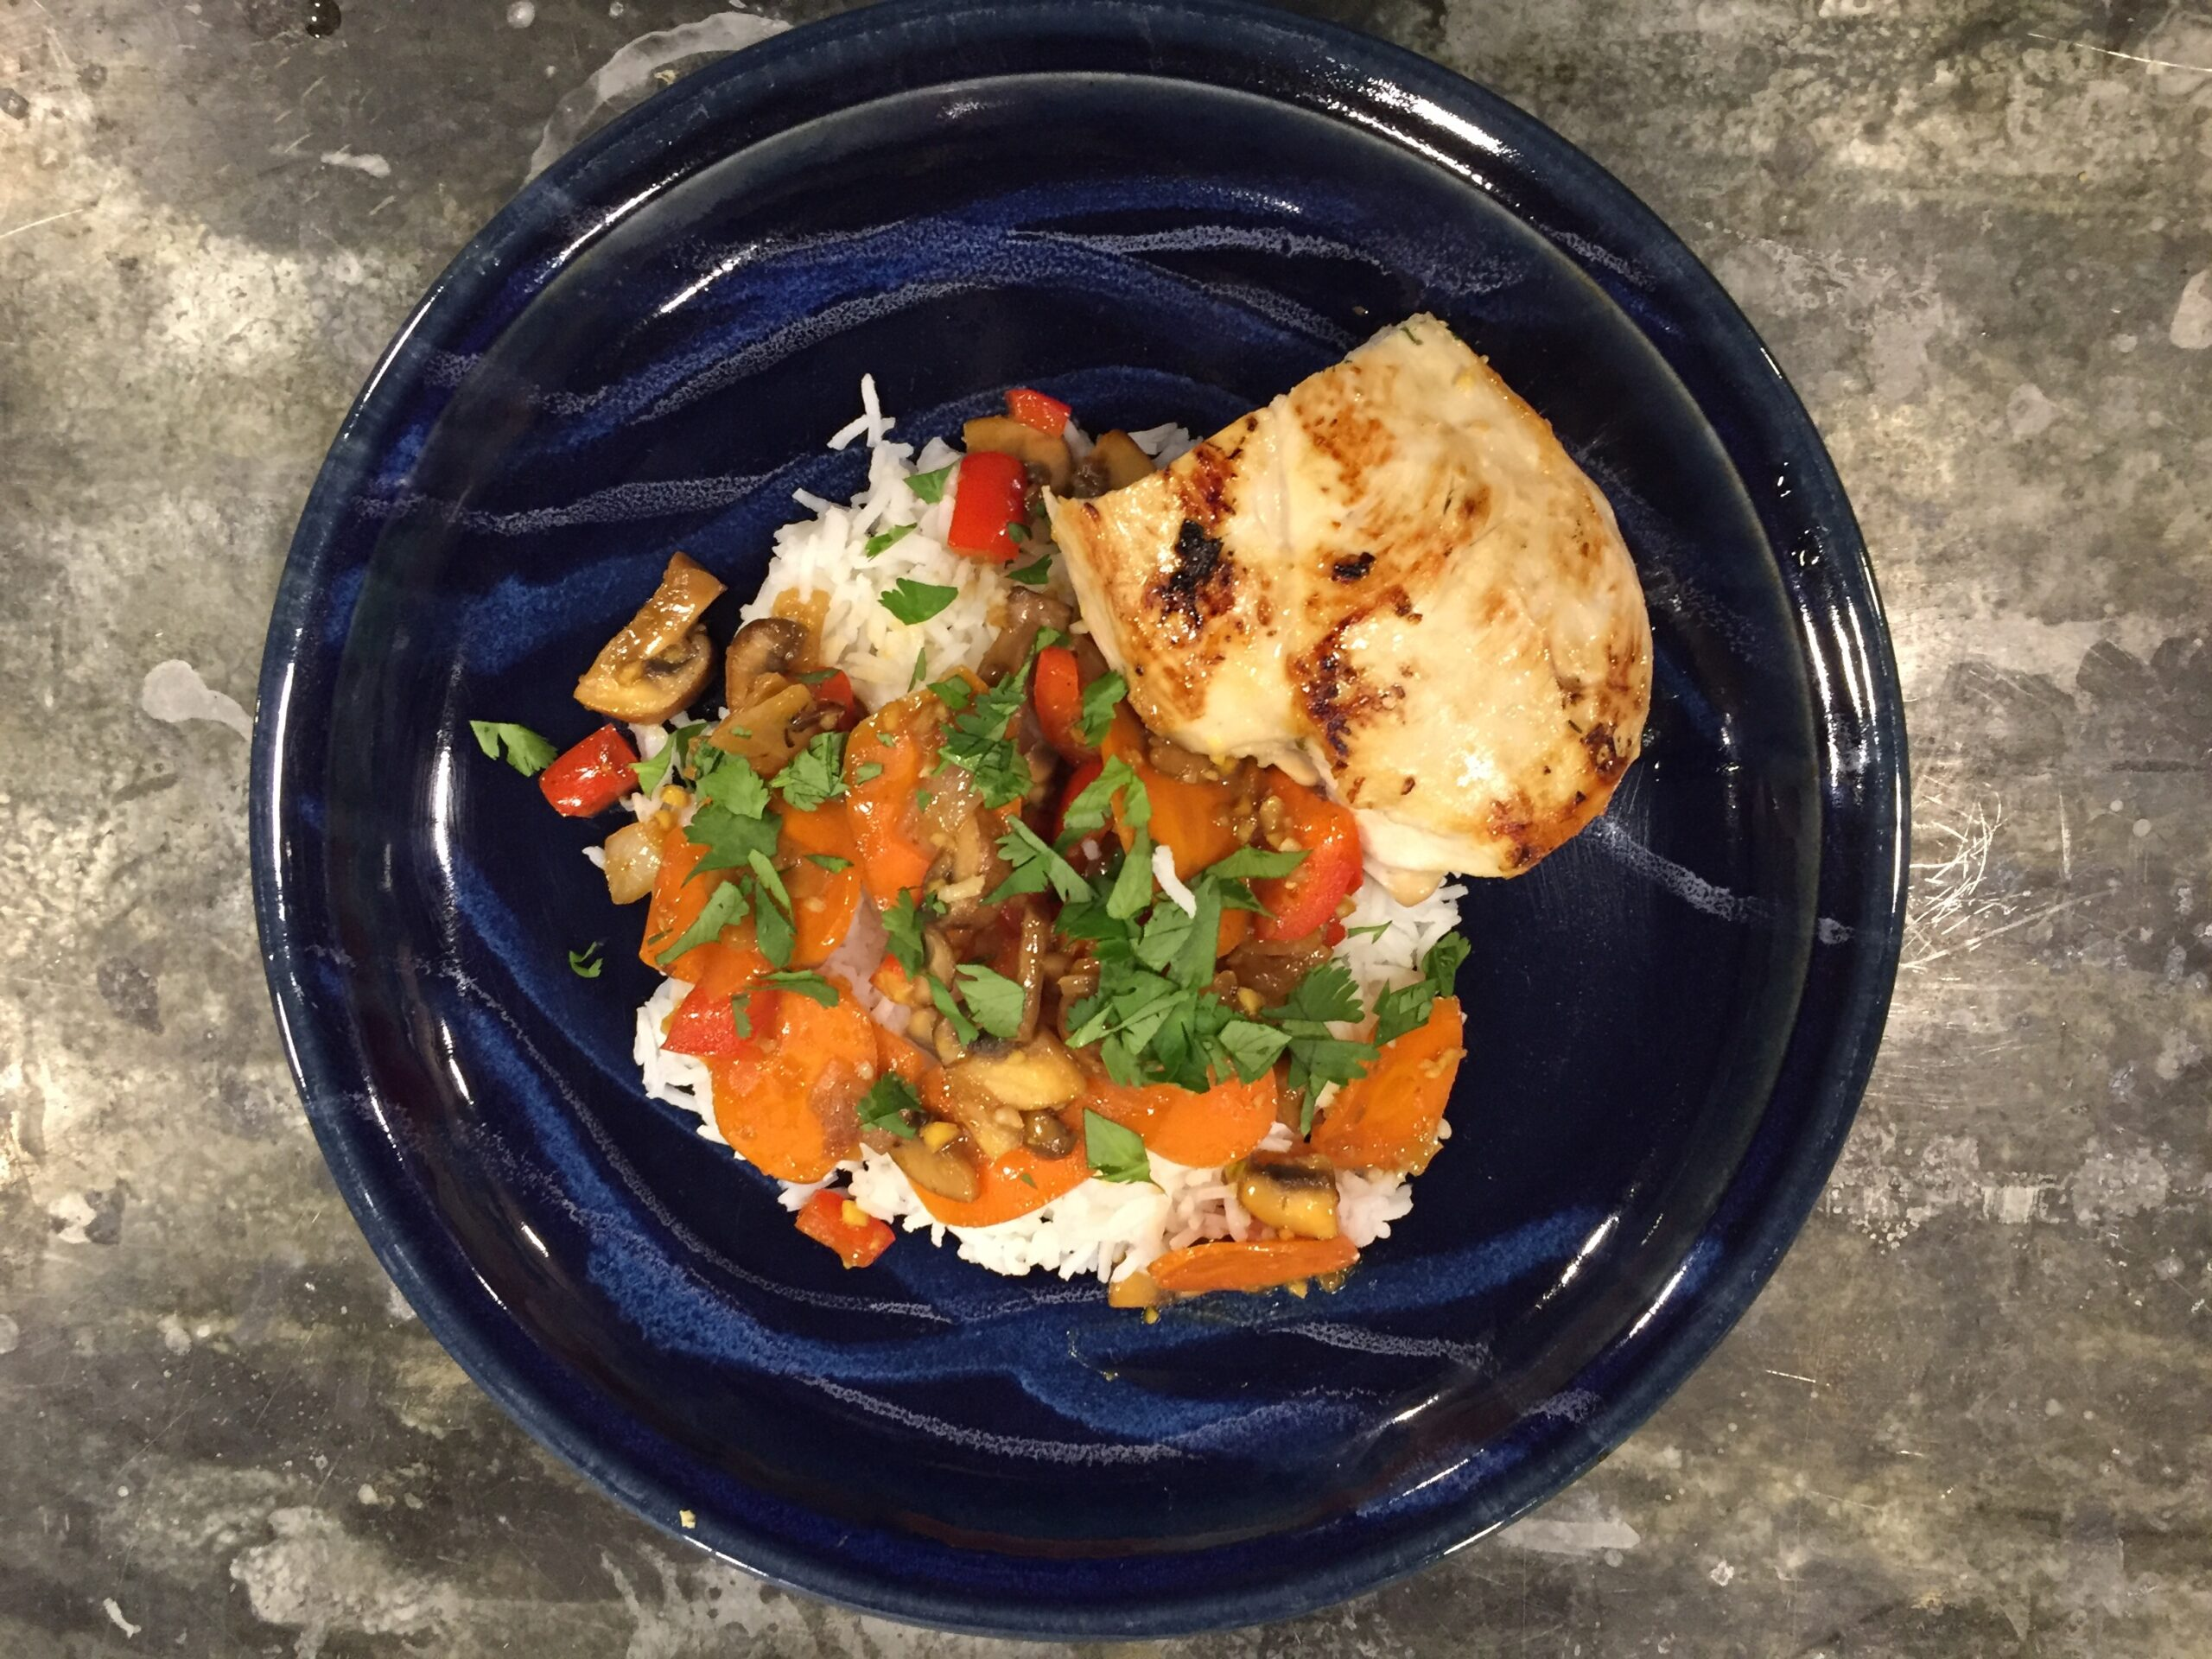 Easy pan-roasted chicken breast